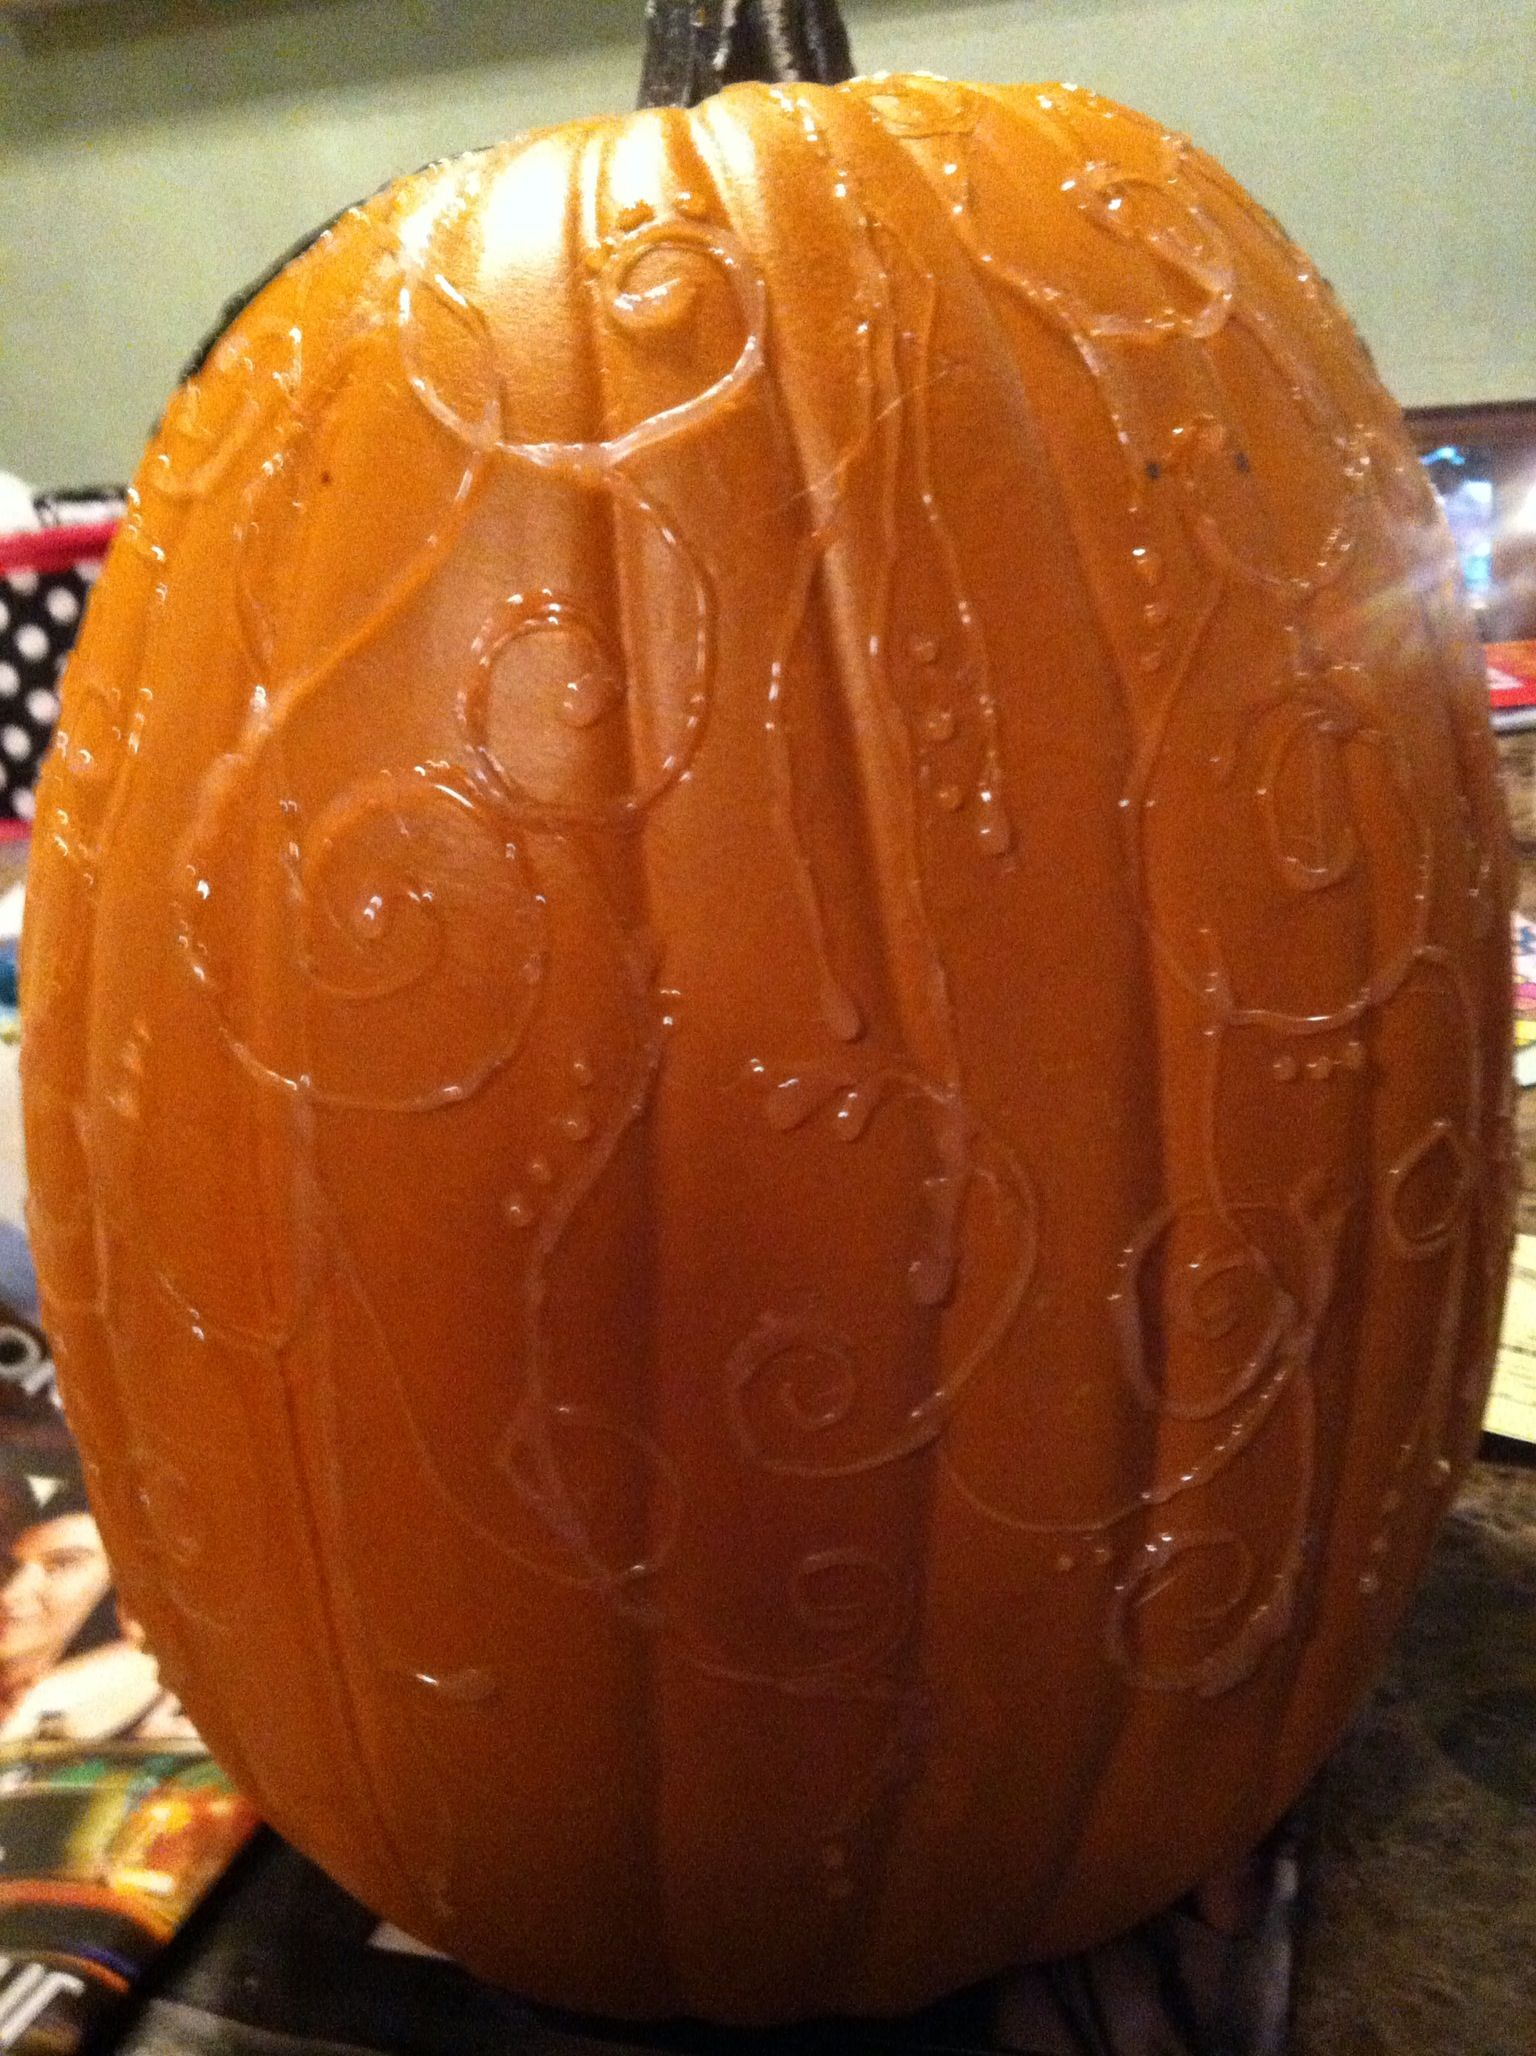 Hot glue designs on a pumpkin.  Then paint any color you want. Easy. Cheap. And FUN!